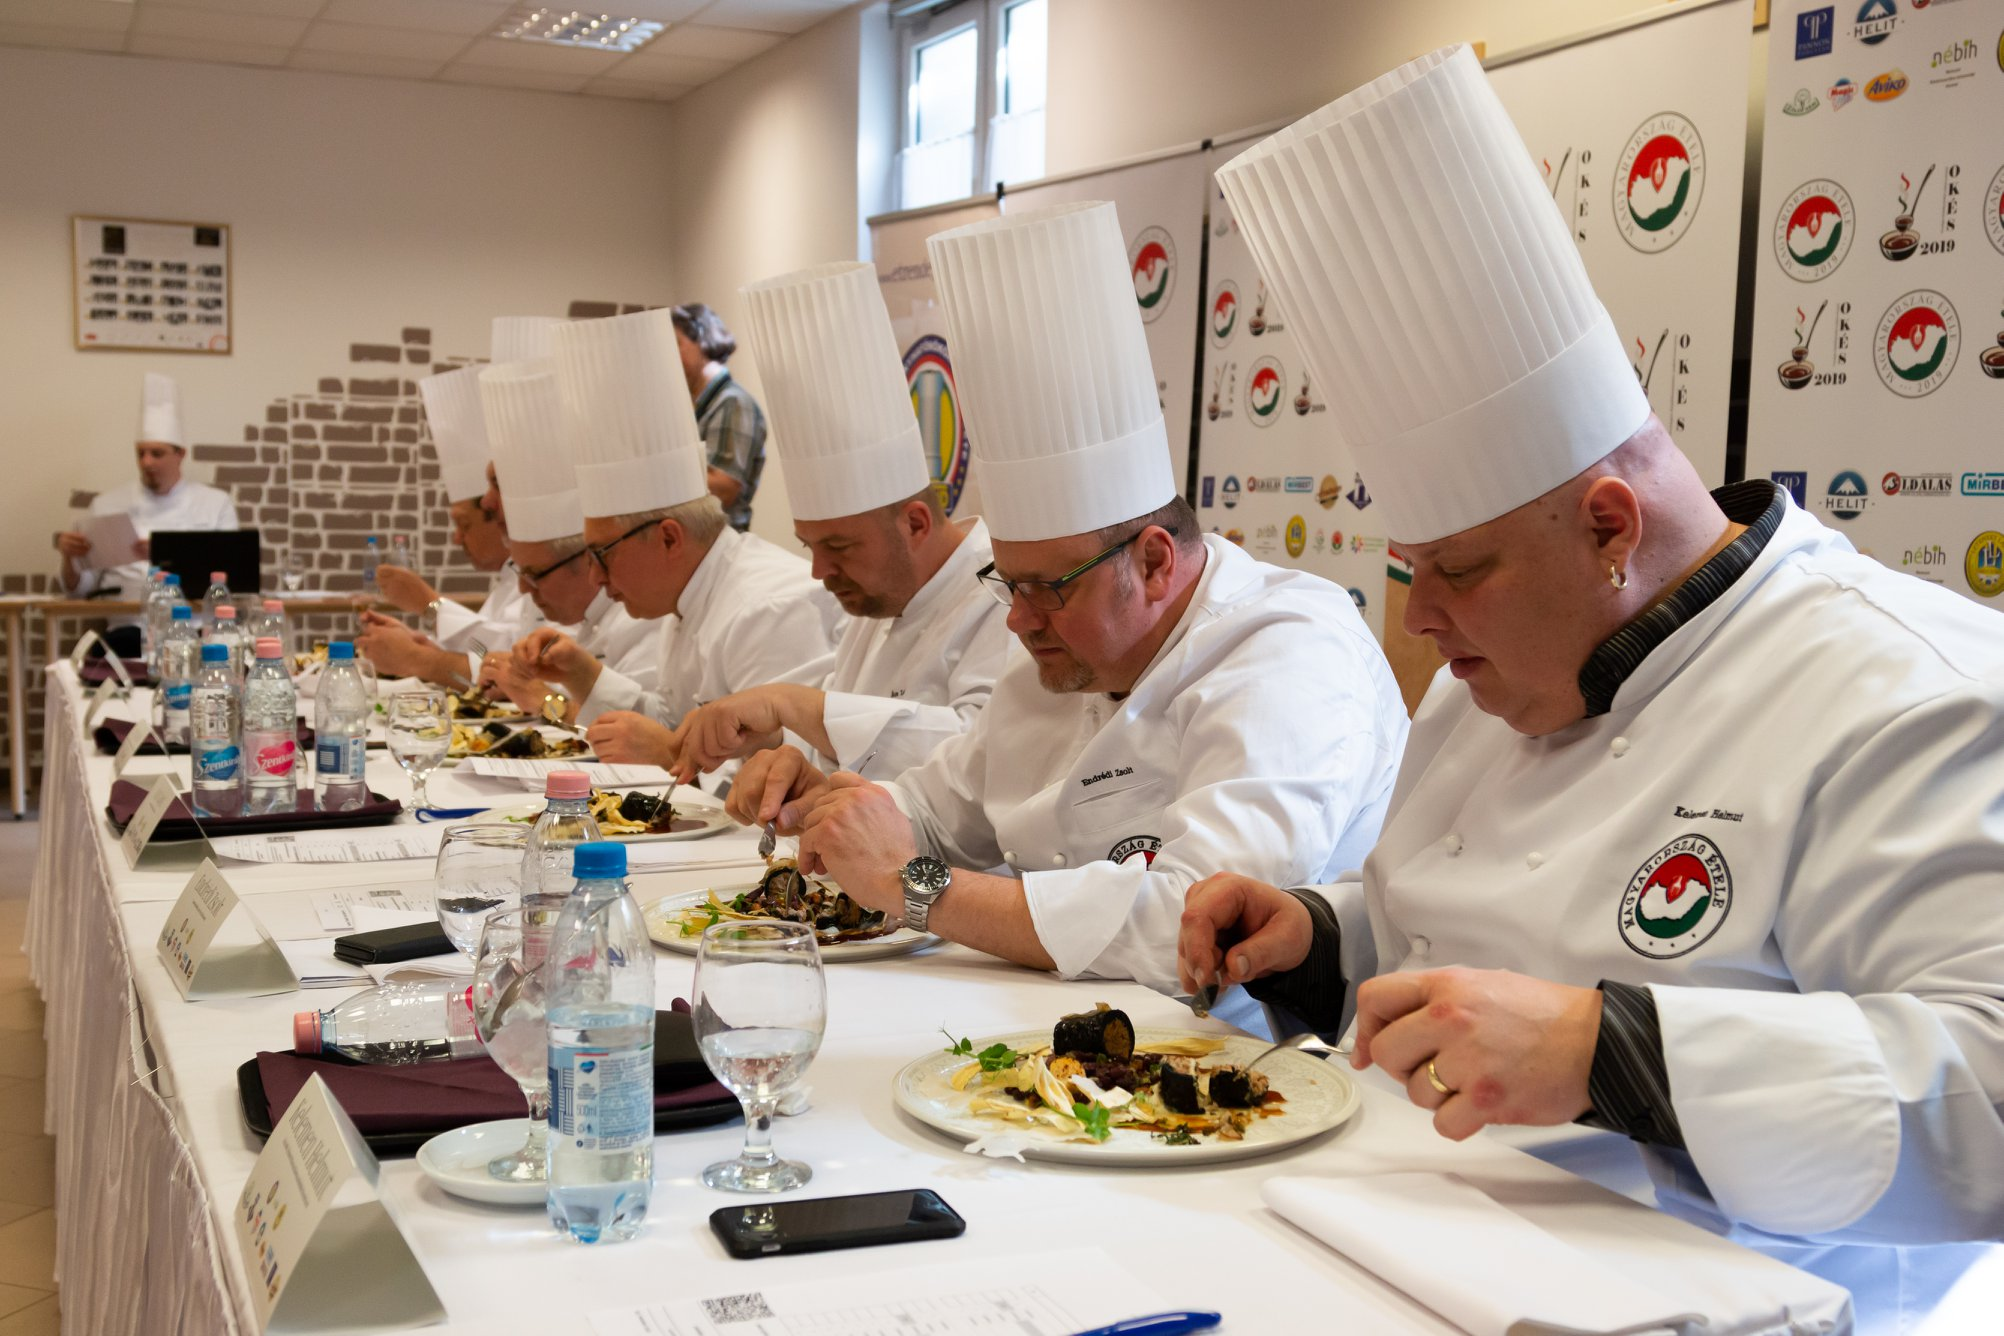 Hungary's Meal, competition, gastronomy, meals